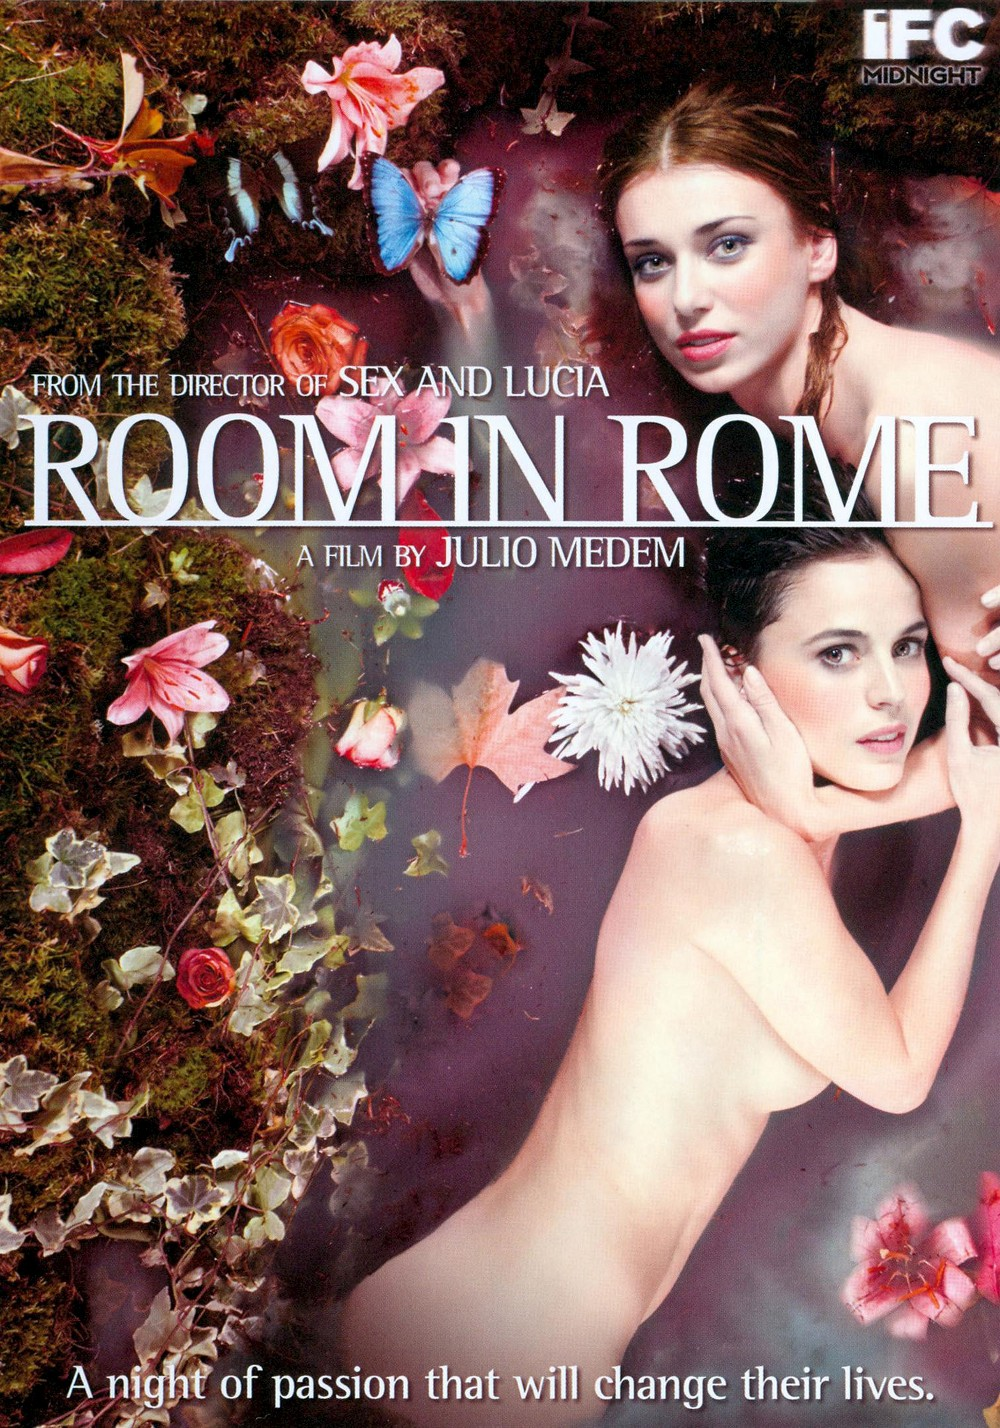 Mpi Room in rome (Dvd), Movies